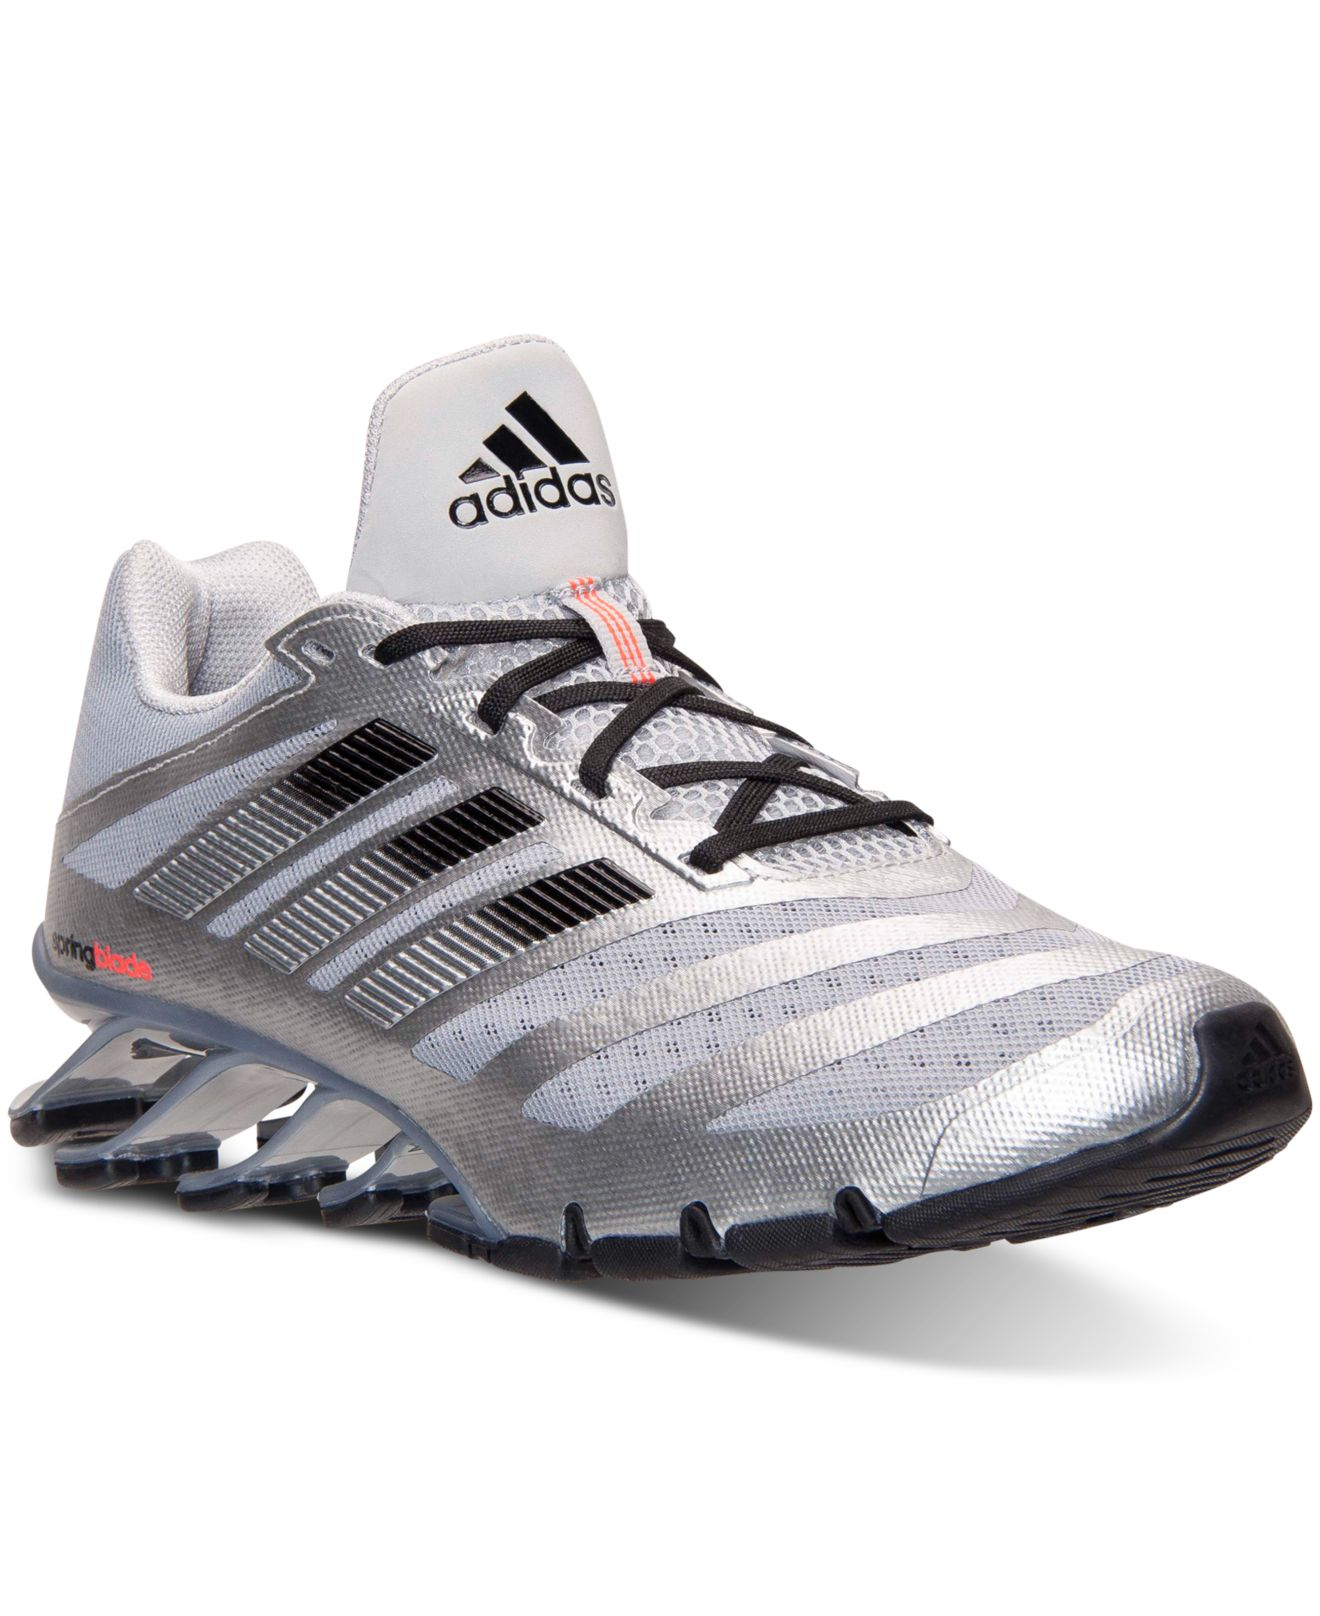 official photos 9a4fe fd908 ... italy lyst adidas originals springblade ignite low top running sneakers  ea0e2 cebf1